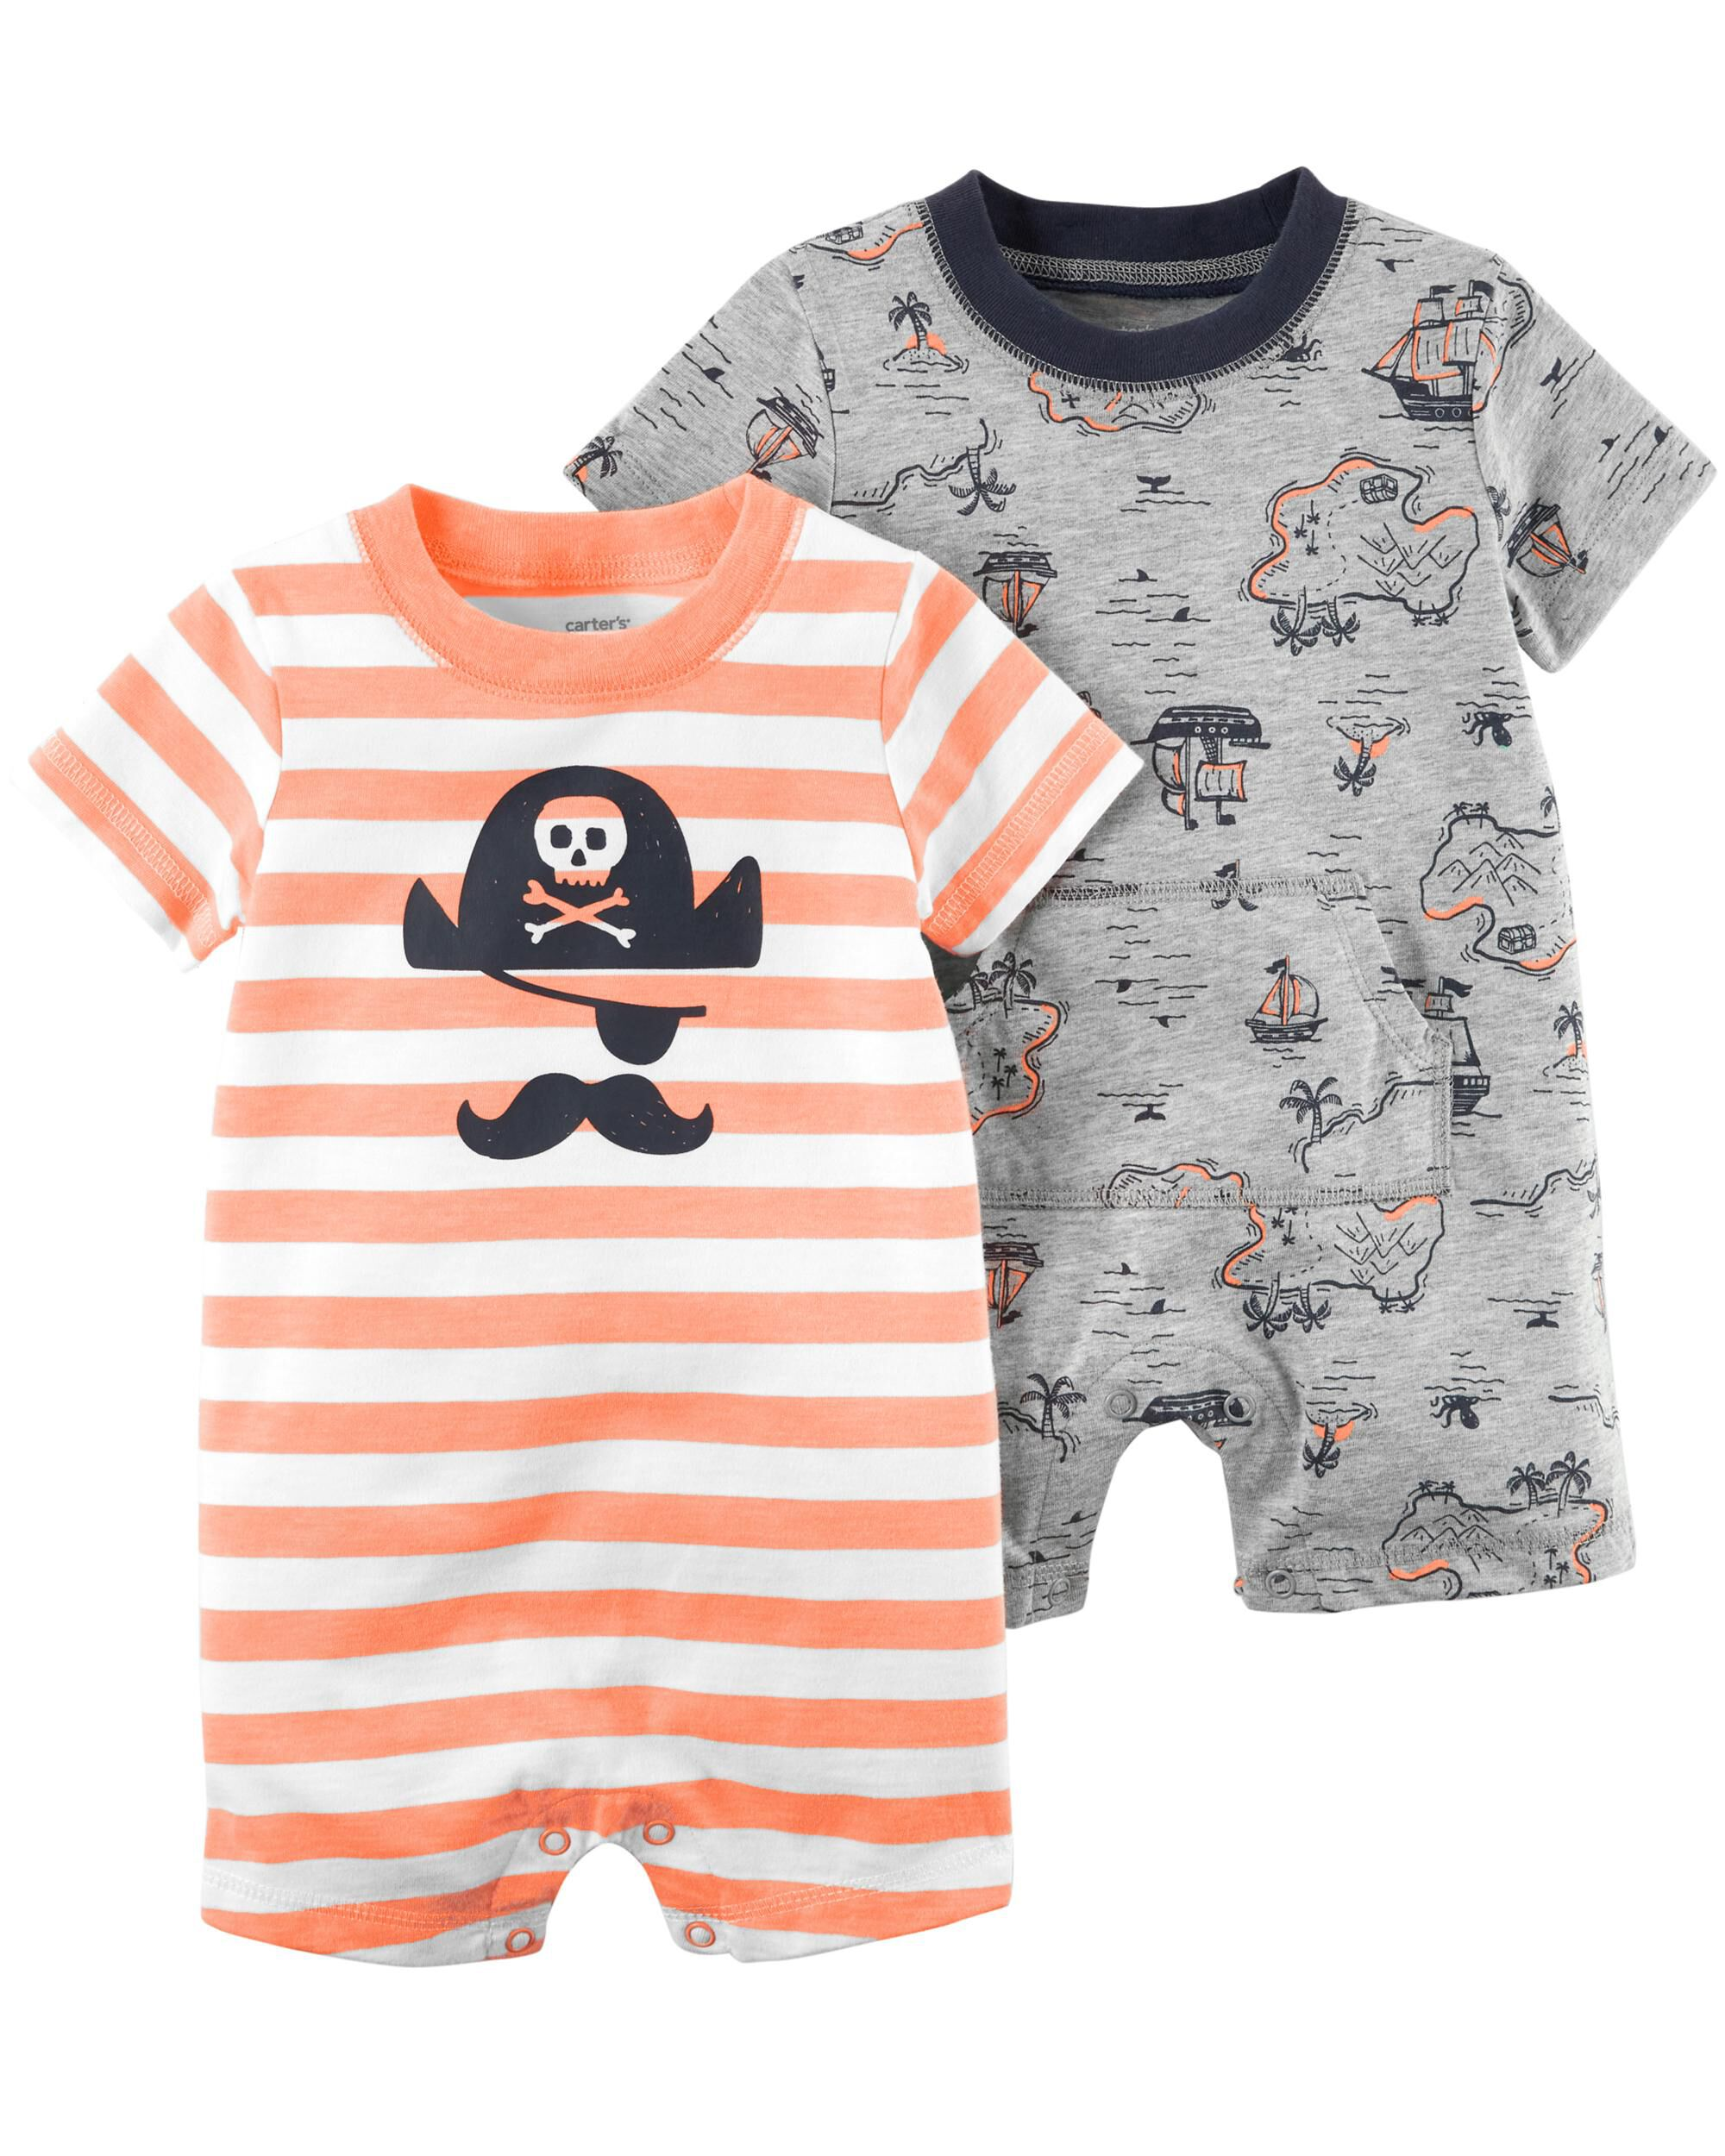 Baby & Toddler Clothing Official Website Monsters Inc Baby Boy Romper Size 1 Factory Direct Selling Price